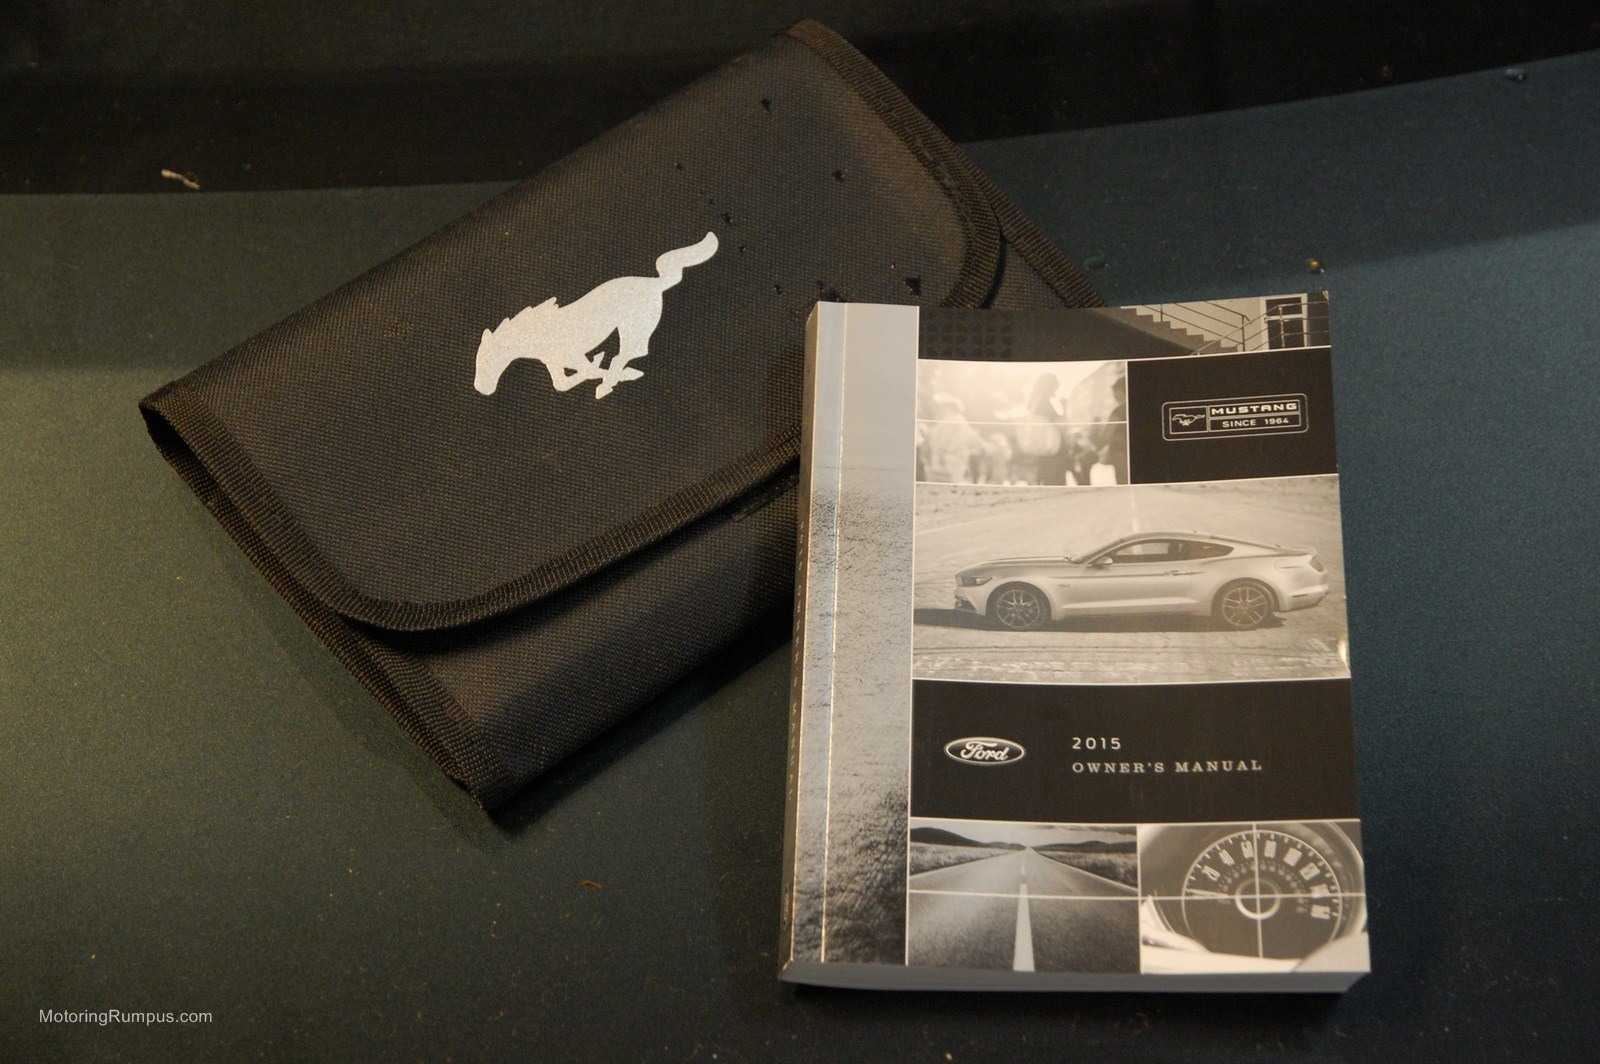 2015 Ford Mustang Owner's Manual